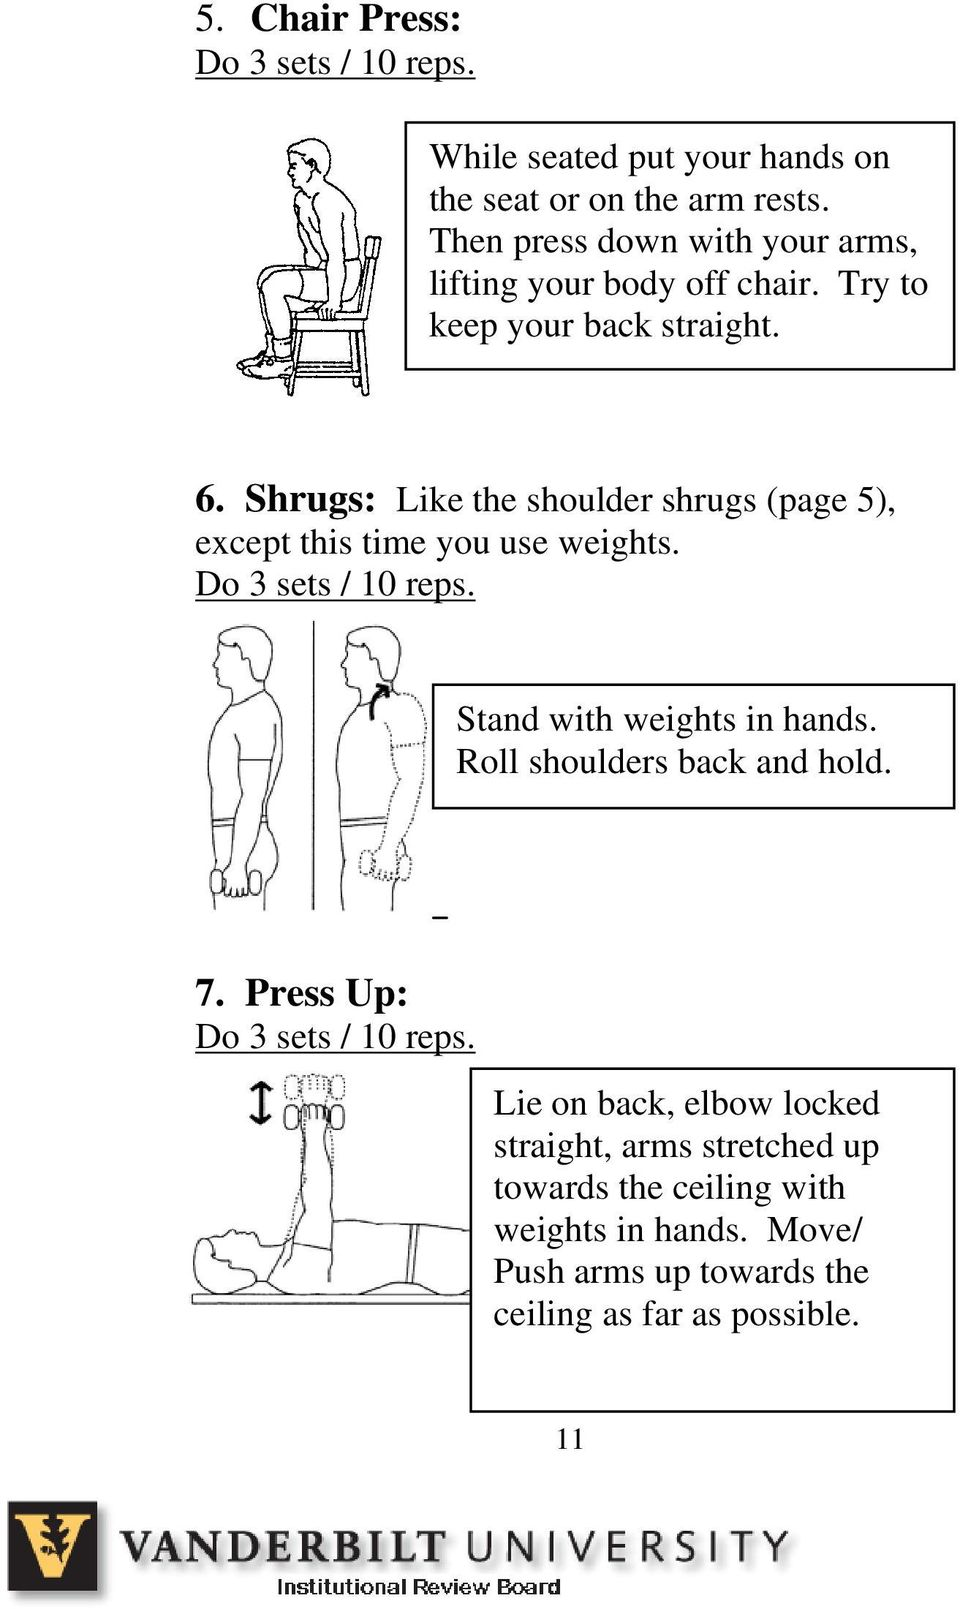 Shrugs: Like the shoulder shrugs (page 5), except this time you use weights. Stand with weights in hands.